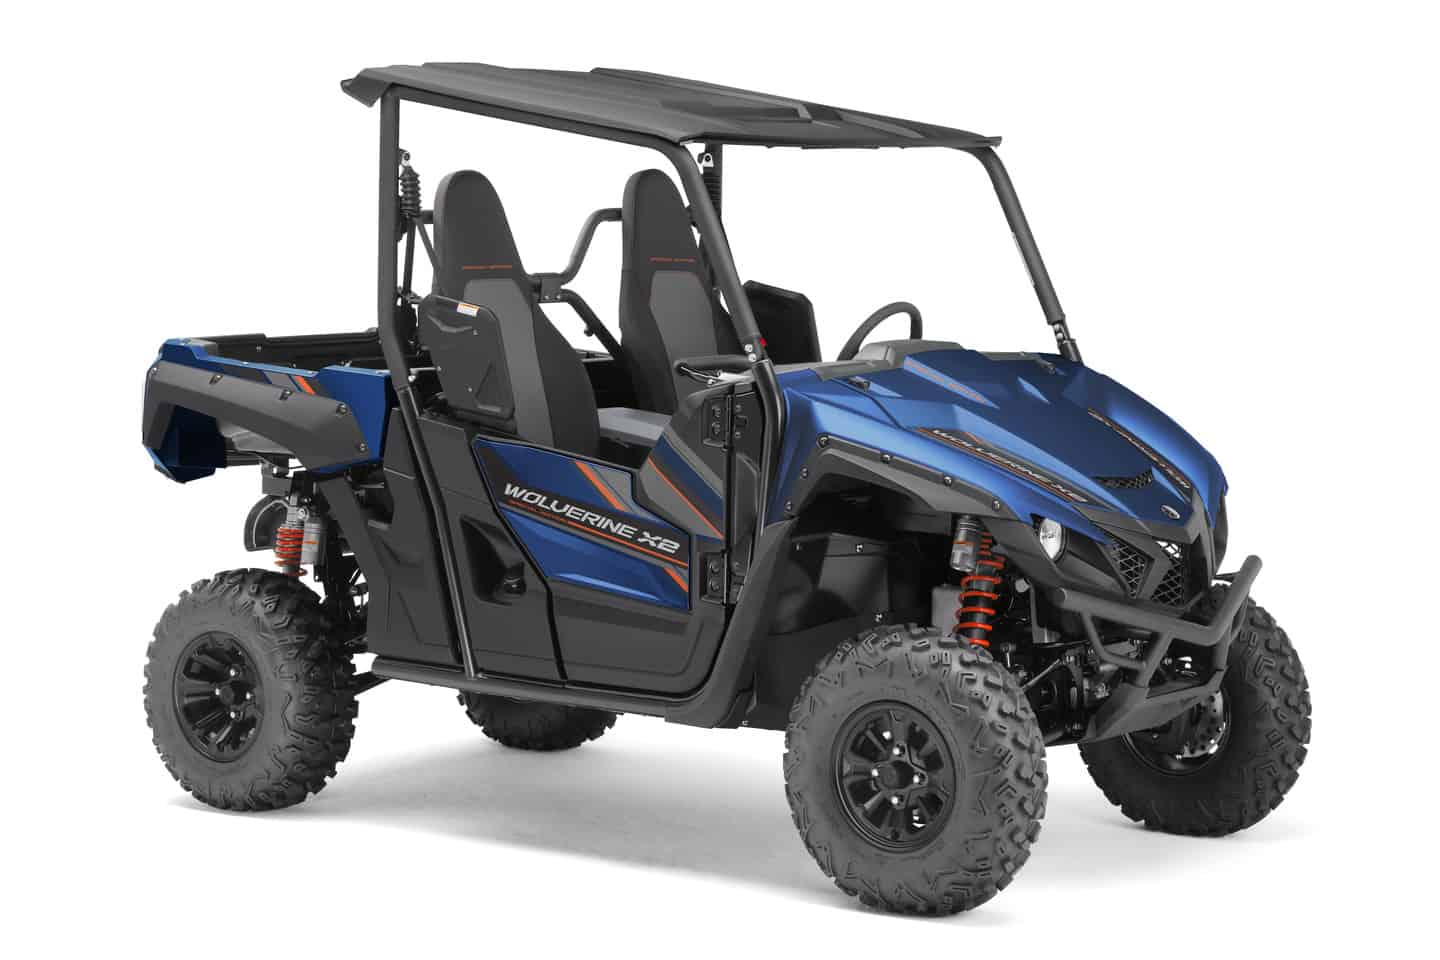 Who Makes The Best Side By Side Utv >> Yamaha Releases All-New 2019 Wolverine X2 - UTV Sports